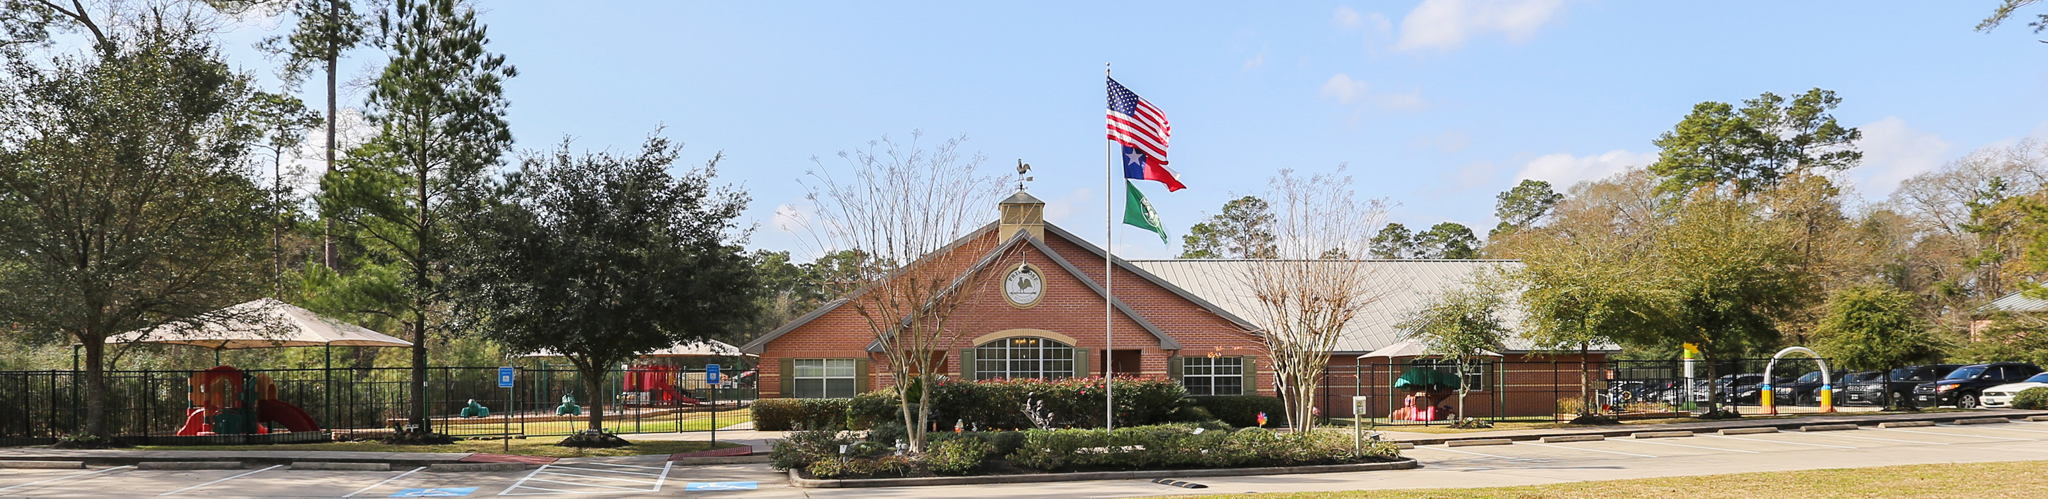 Exterior of a Primrose School of The Woodlands at College Park